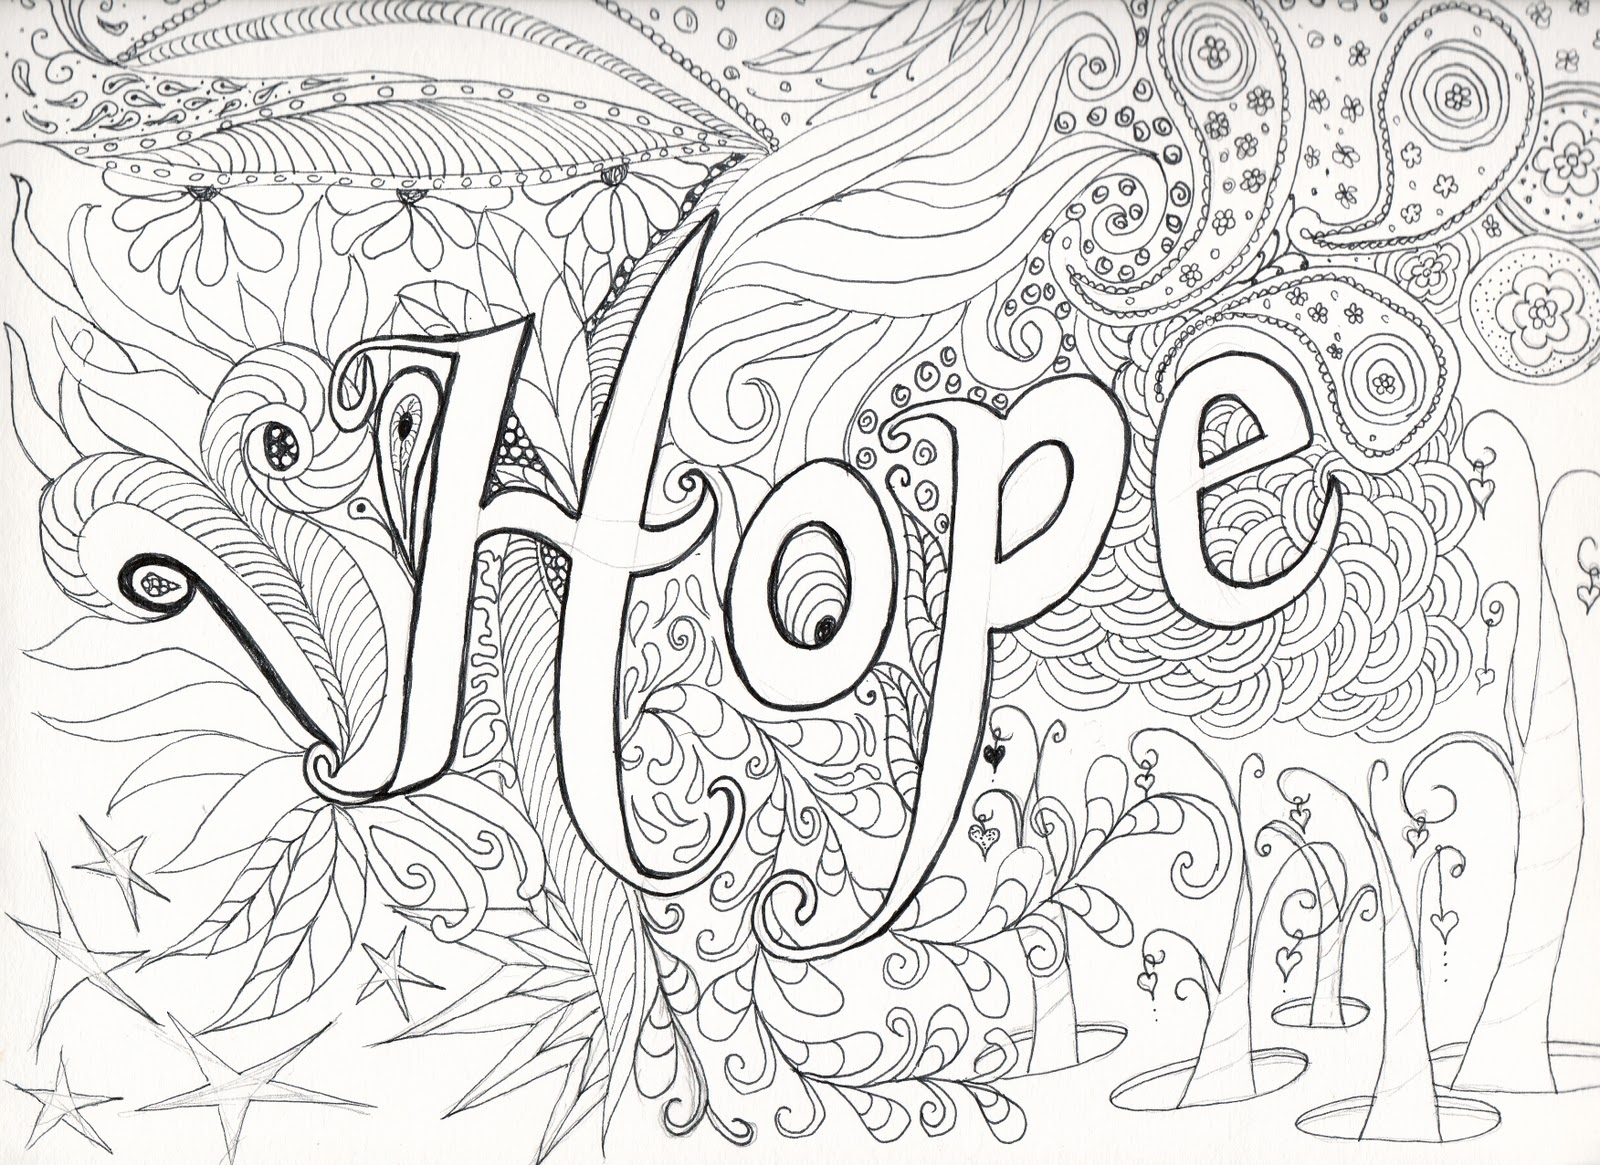 Awesome Hard Flower Coloring Pages For Teenagers Design To Print